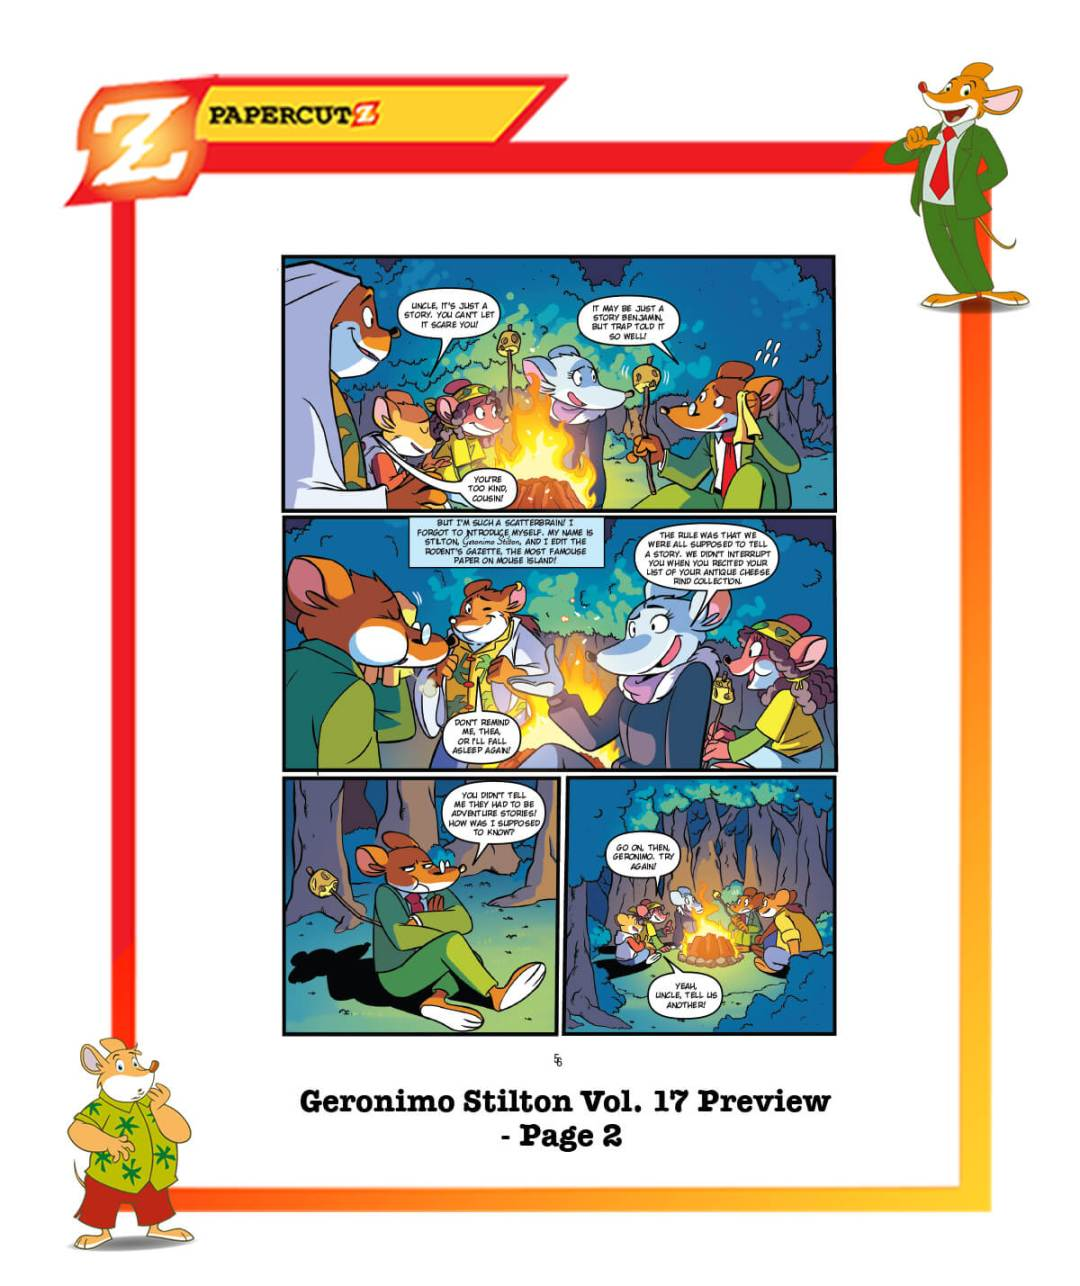 geronimo_stilton_017_preview_page02